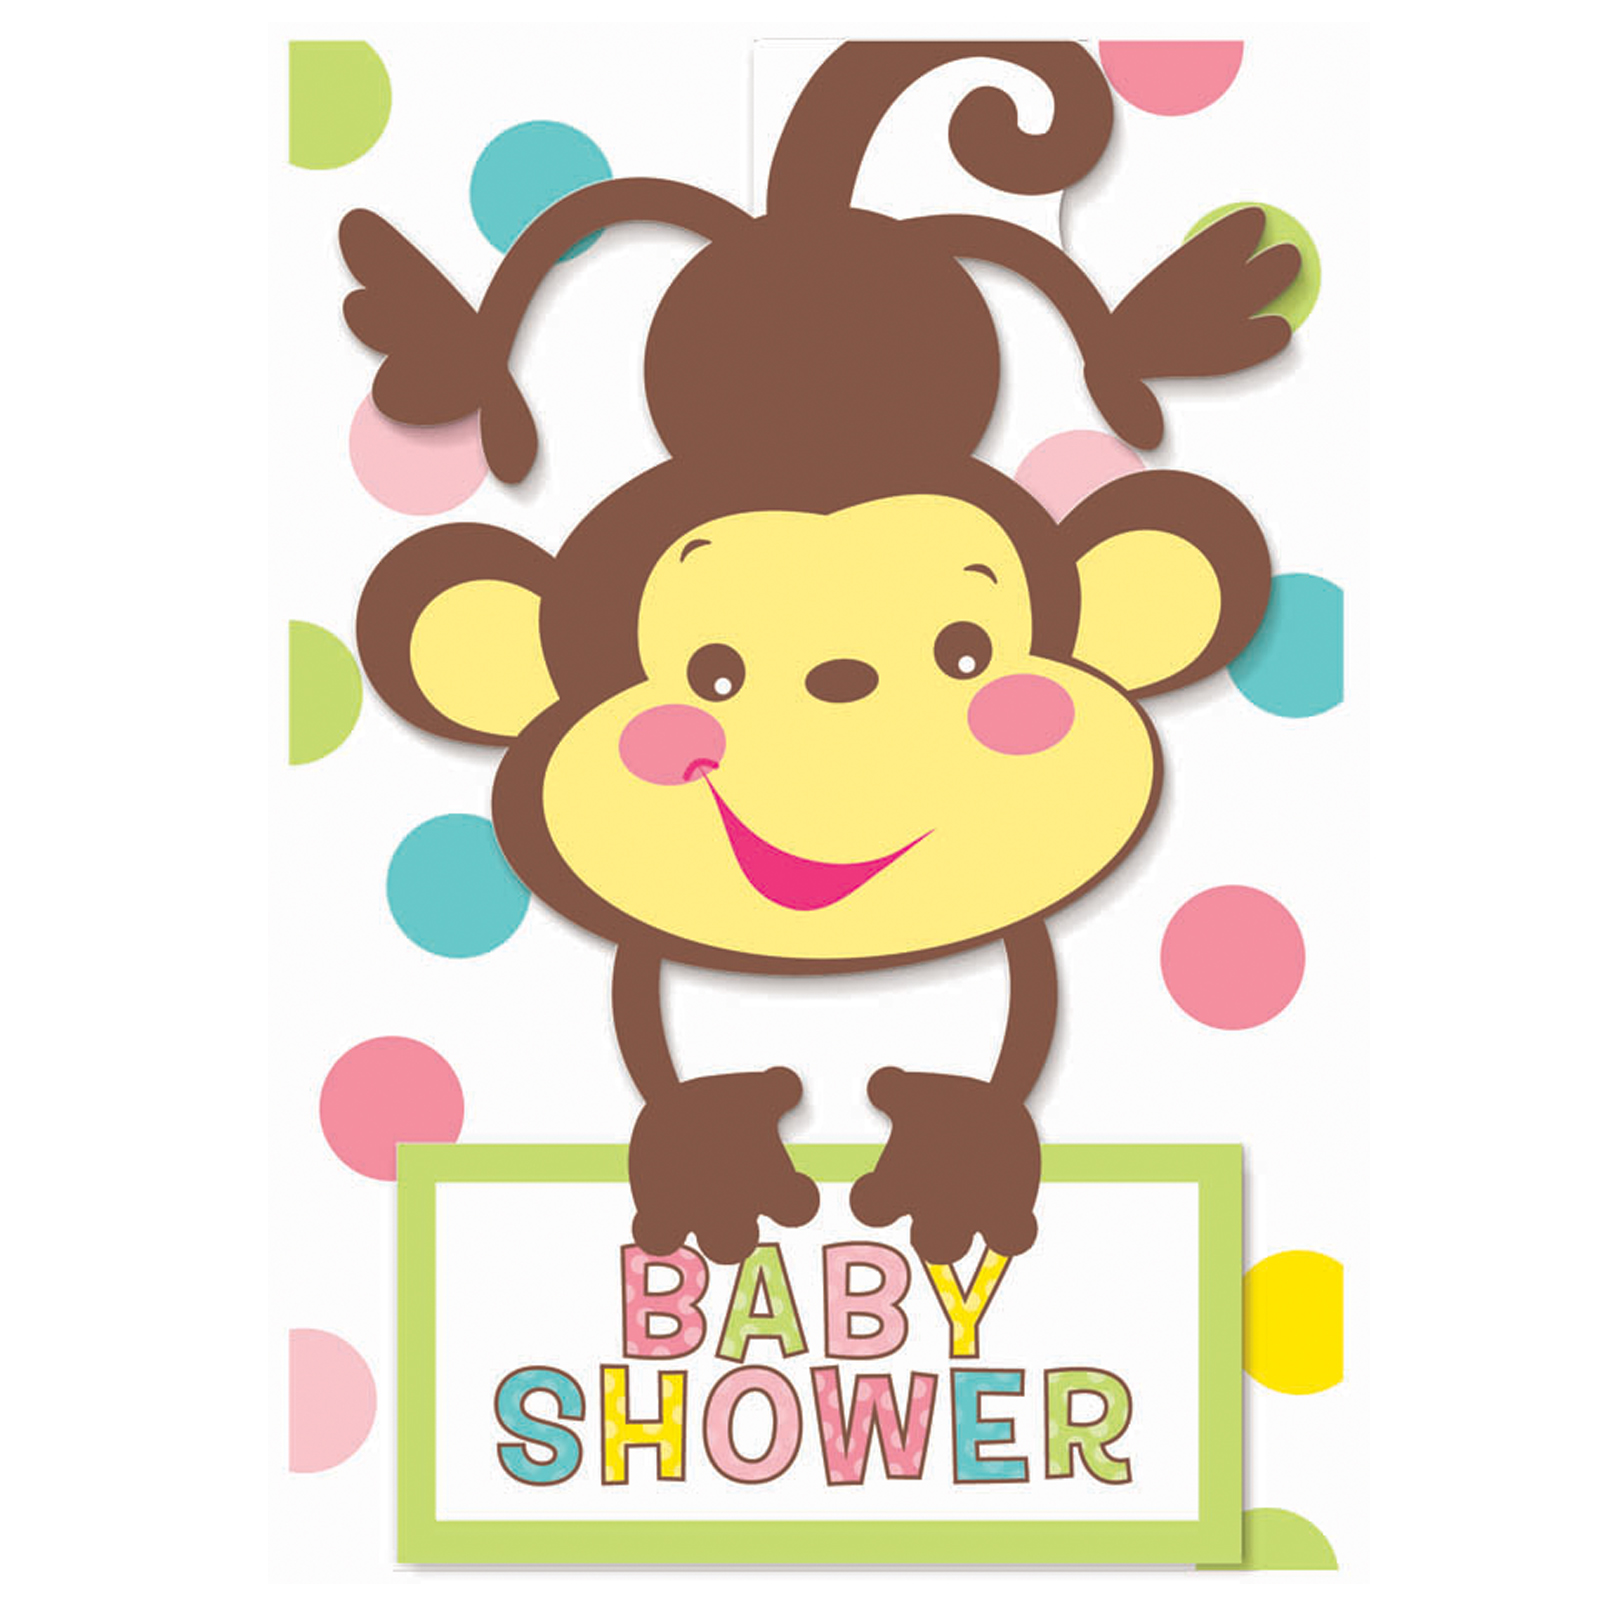 Beautiful clipart monkey. Contemporary design baby shower